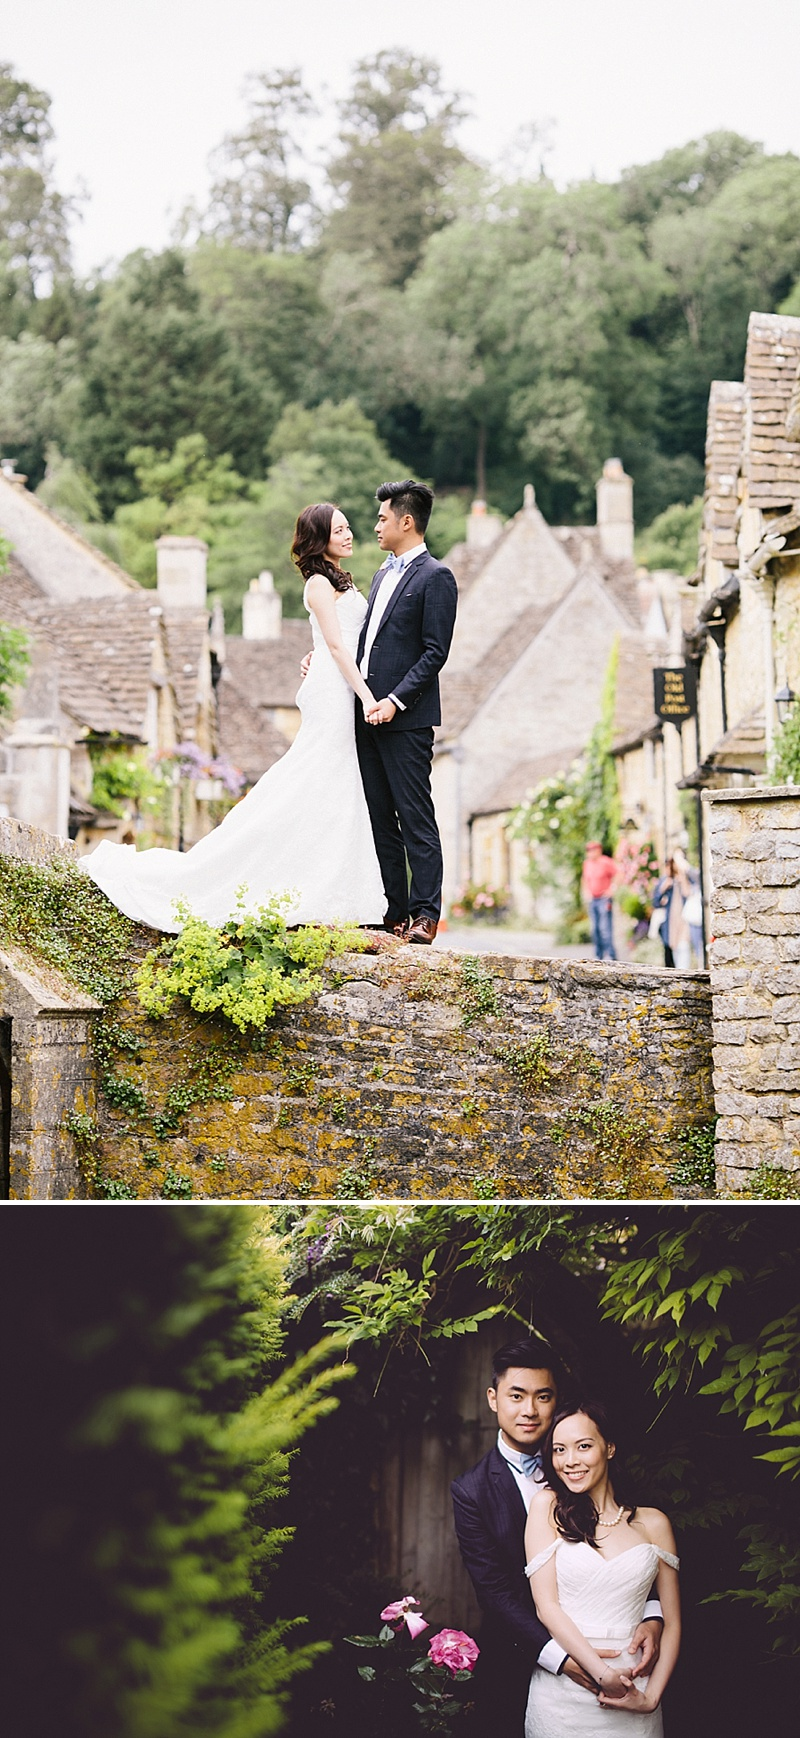 Grays inn bath castle combe over seas pre wedding hong kong england wedding photography sofia plana